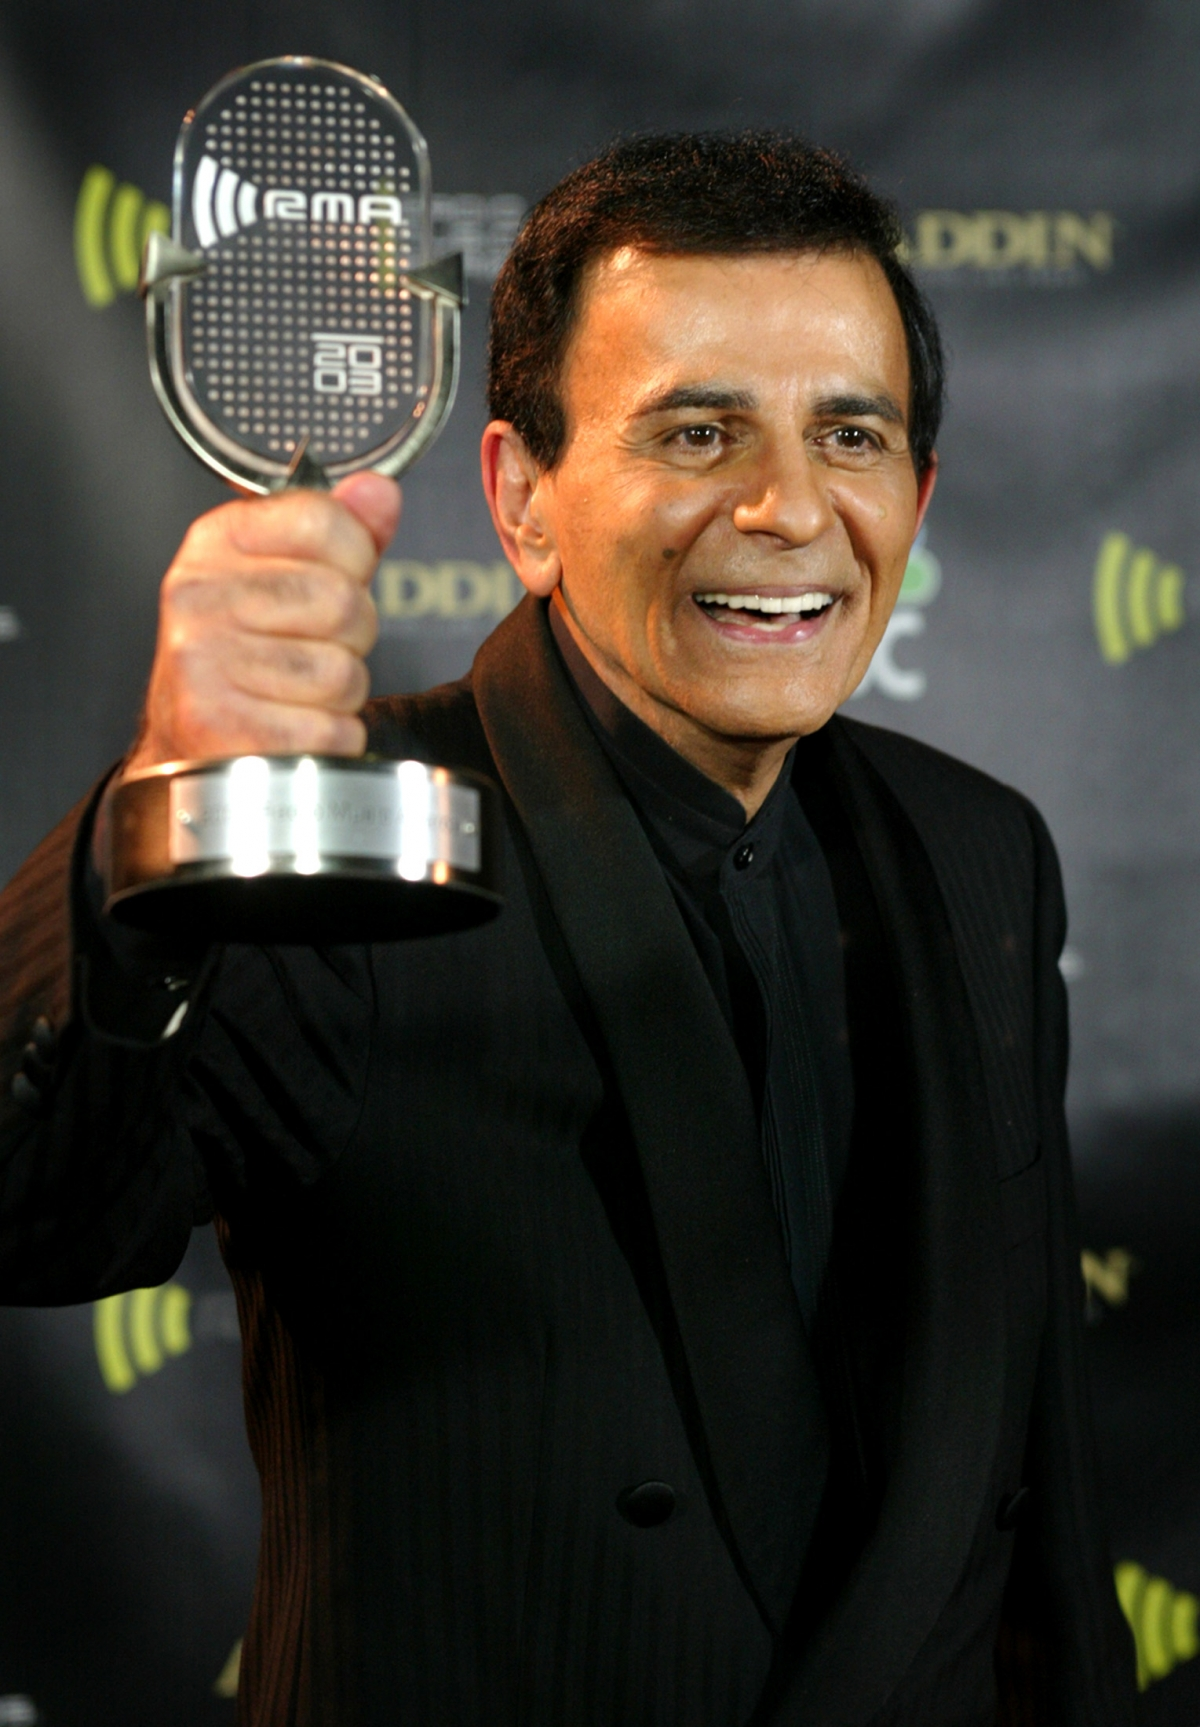 """Casey Kasem Critical: Radio Legend """"won't be with us much longer,"""" Says Family"""